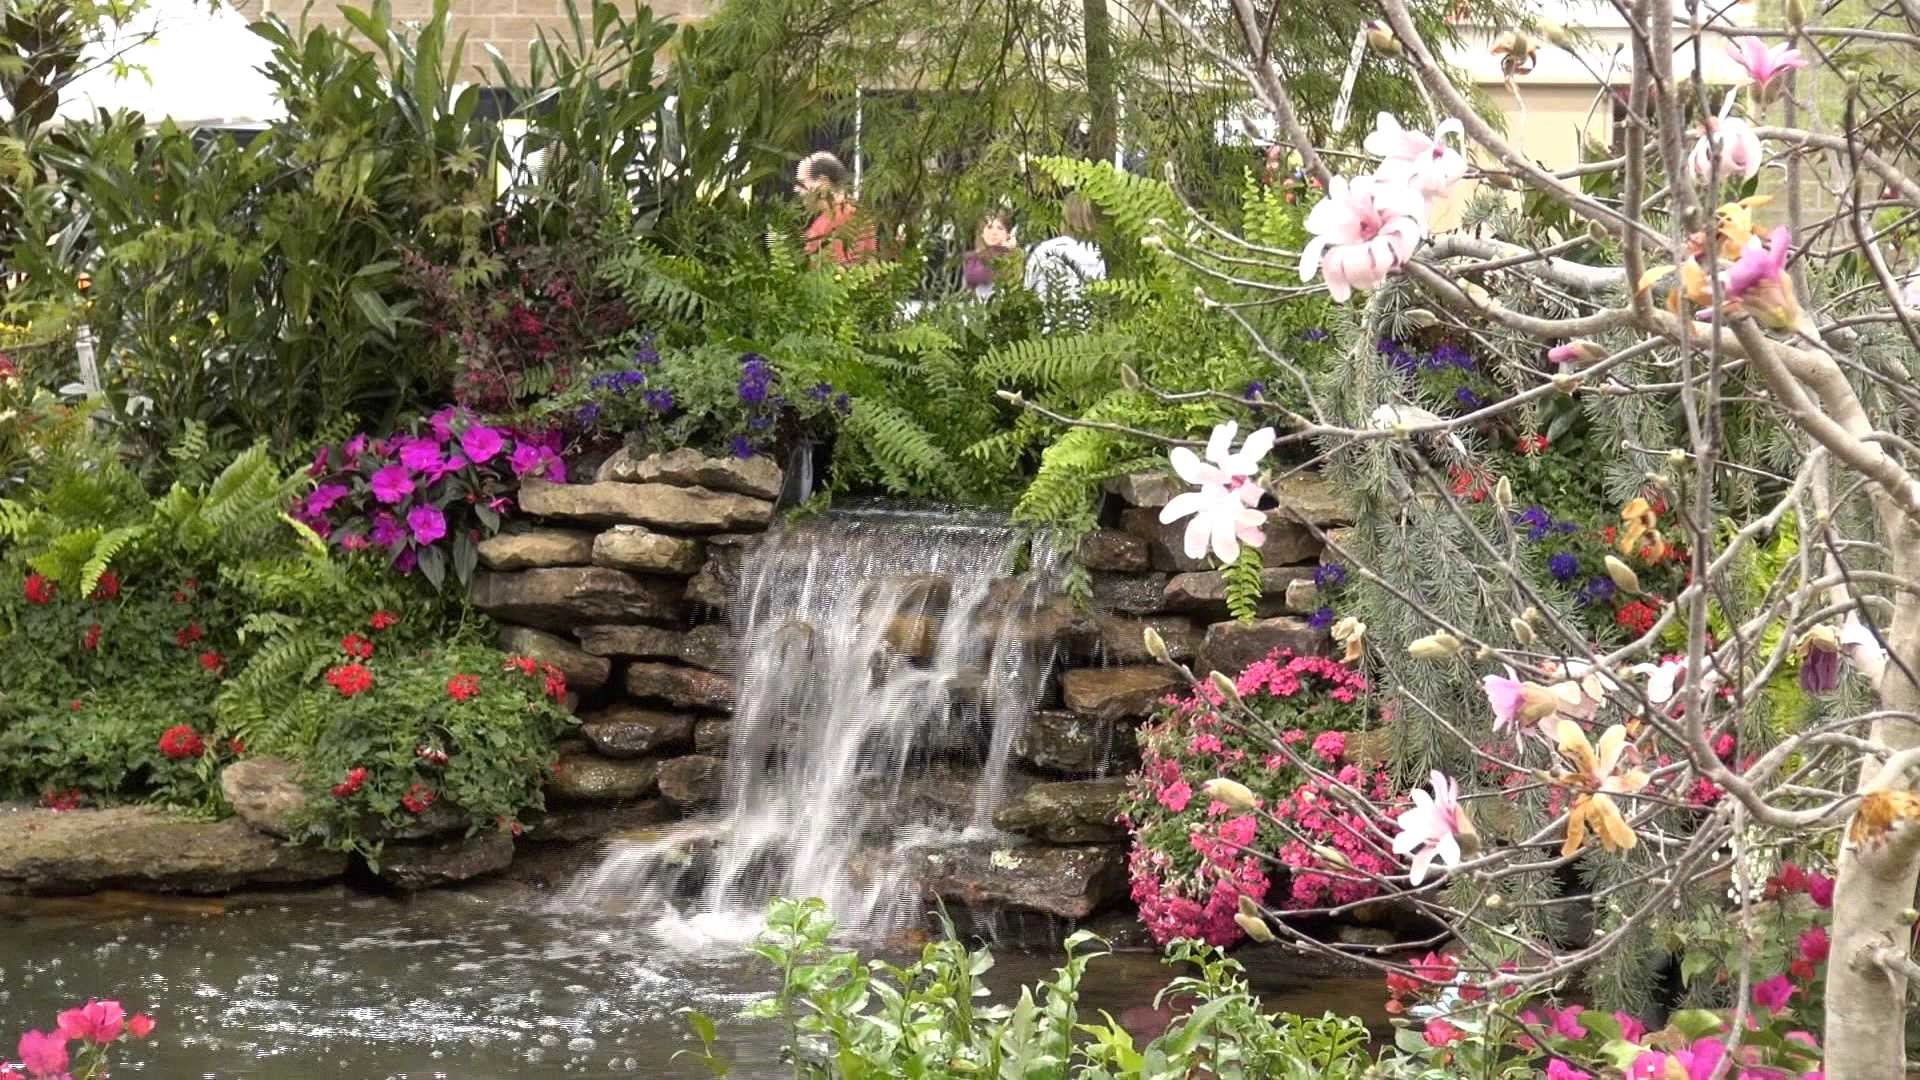 Elegant Lawn And Garden Show To Kick Off In Fort Smith | Fort Smith/Fayetteville  News | 5newsonline KFSM 5NEWS Nice Ideas